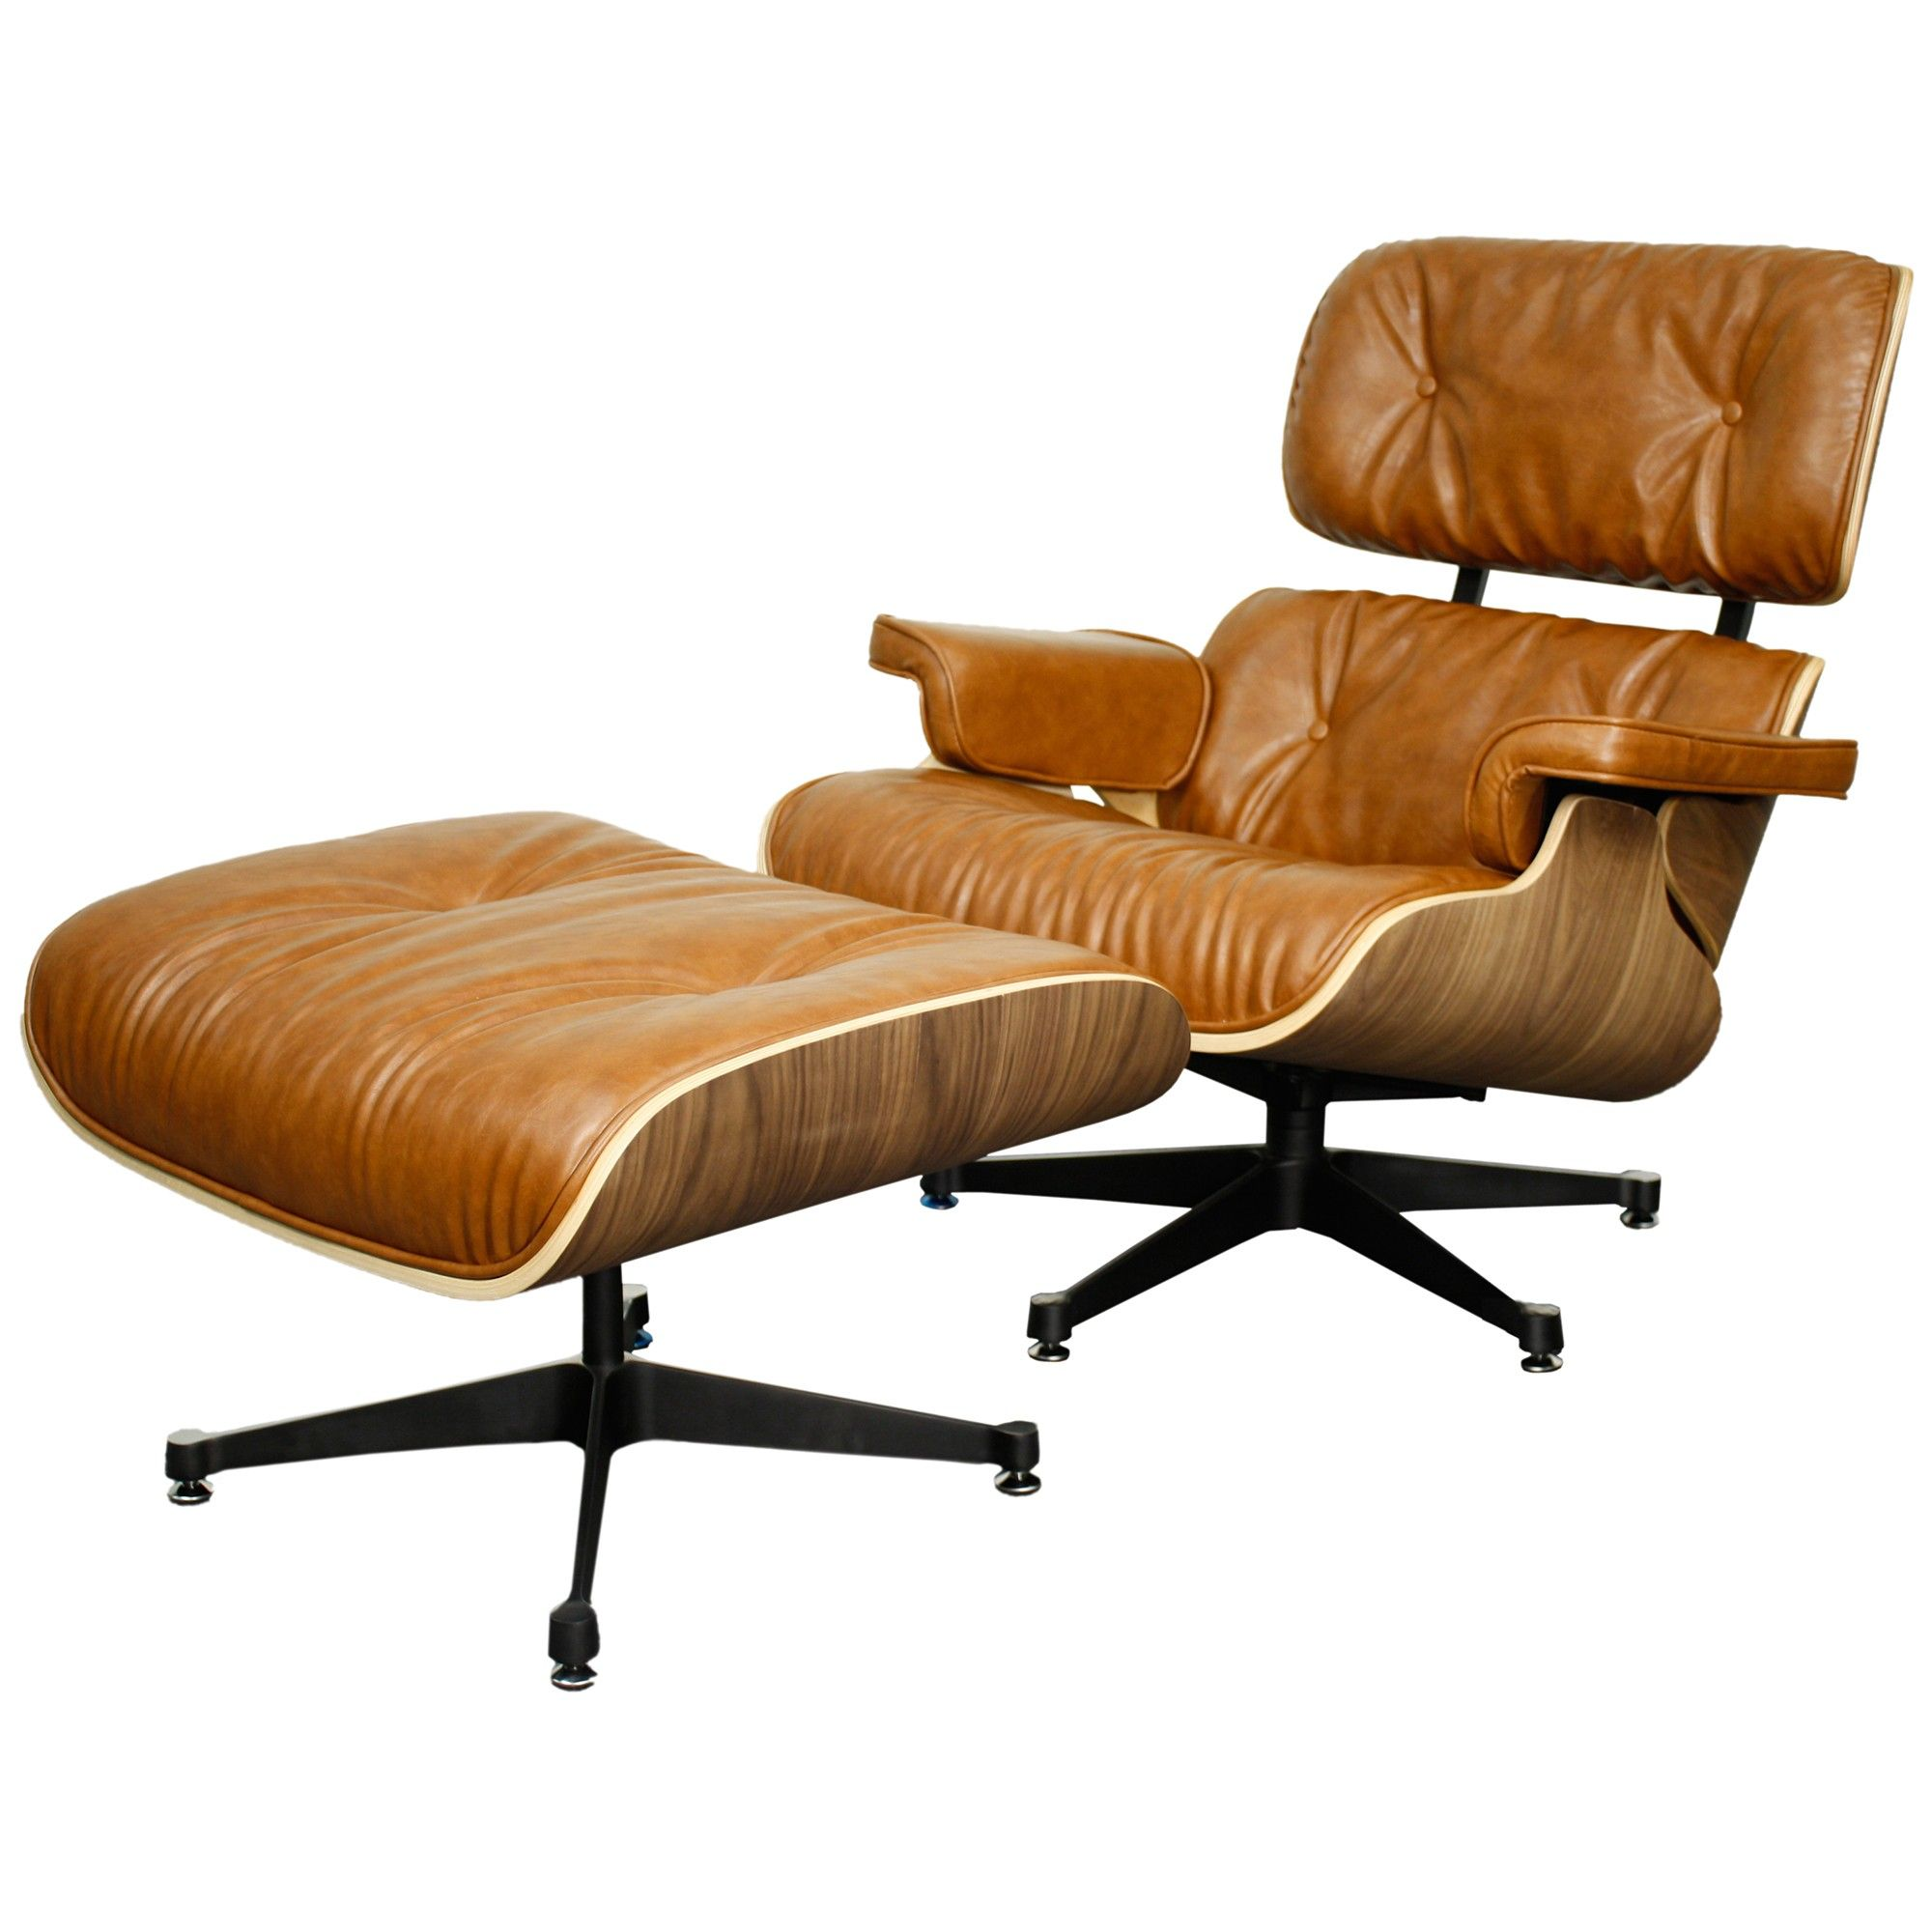 Fauteuils Pride Midcentury Lounge Chair And Ottoman Caramel Walnut Brass